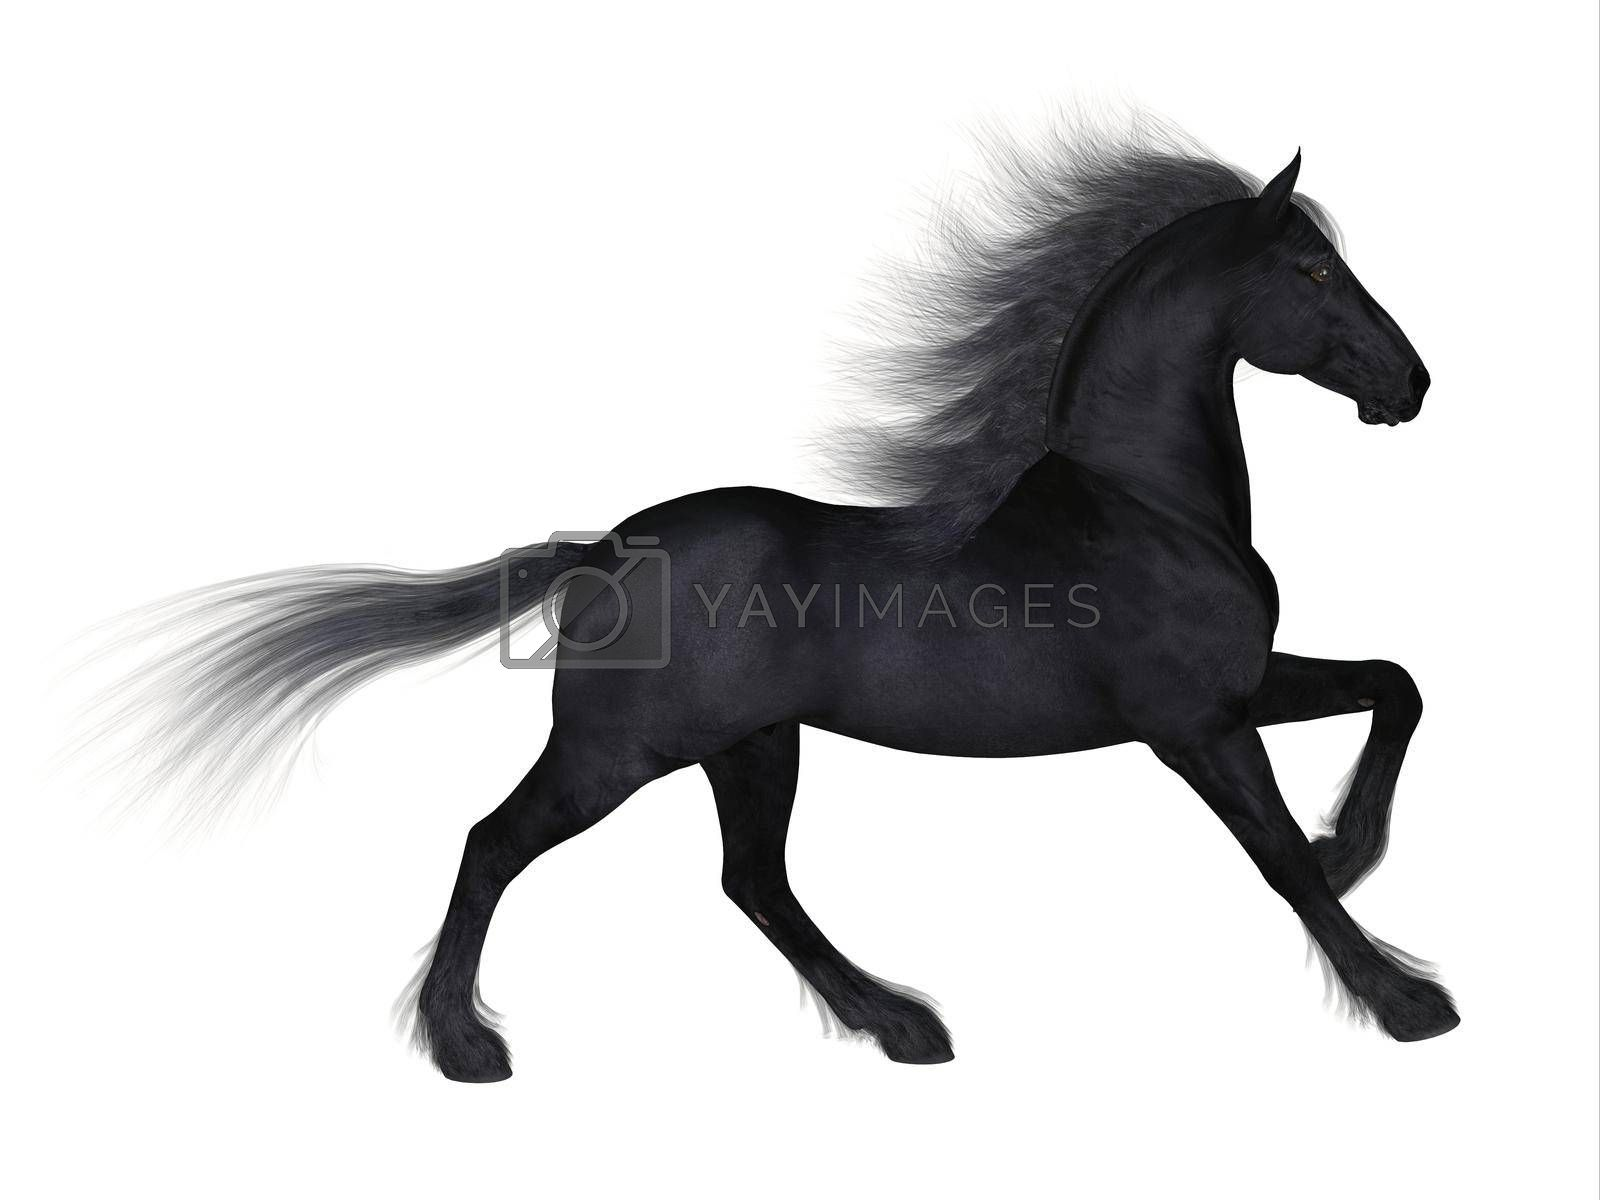 Royalty free image of Friesian Horse by Catmando